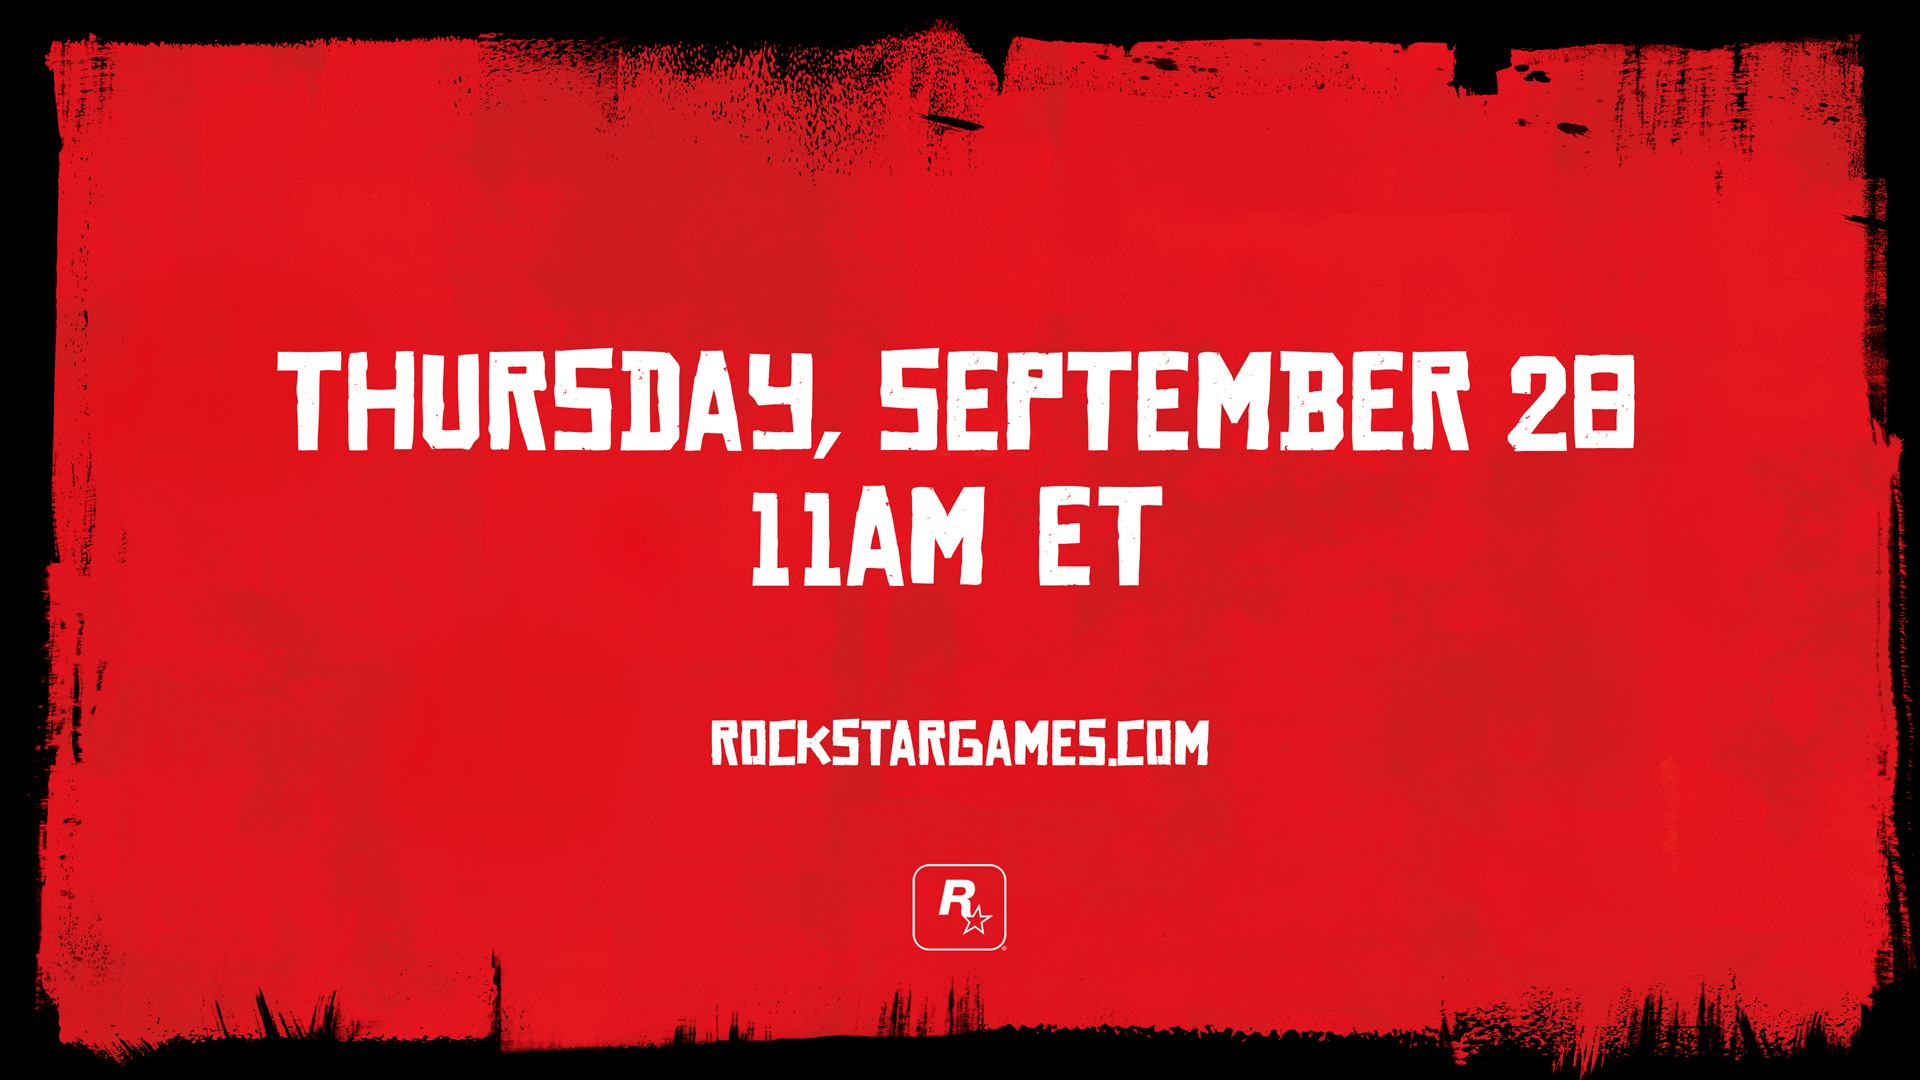 More Details about Red Dead Redemption 2 Coming Next Thursday